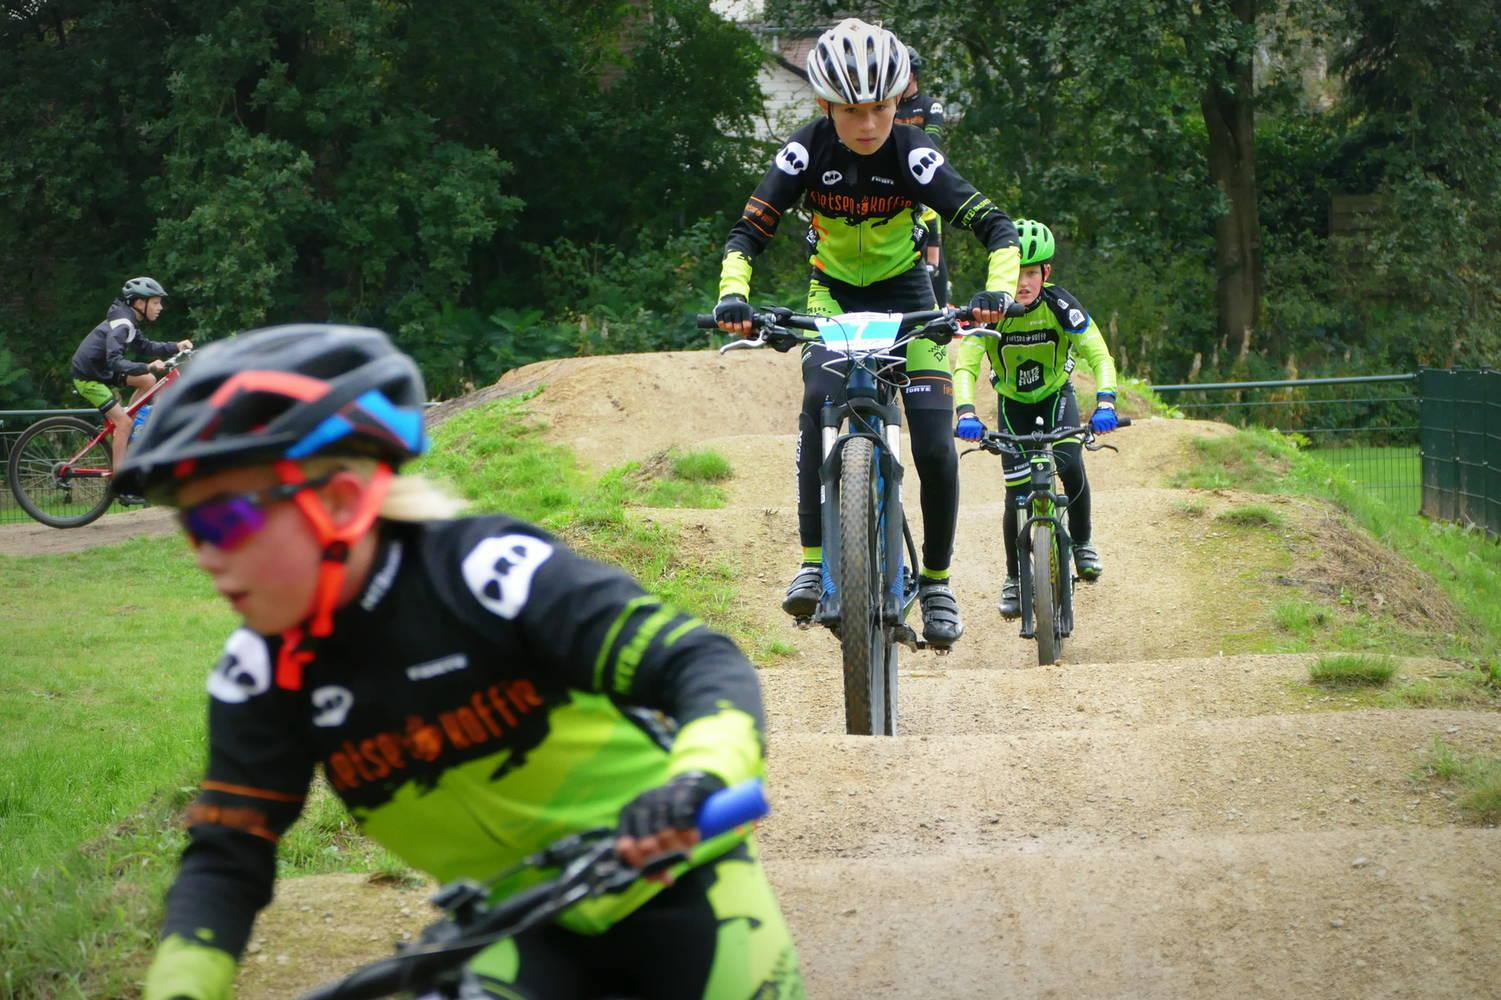 MTB Assen traint in Smilde